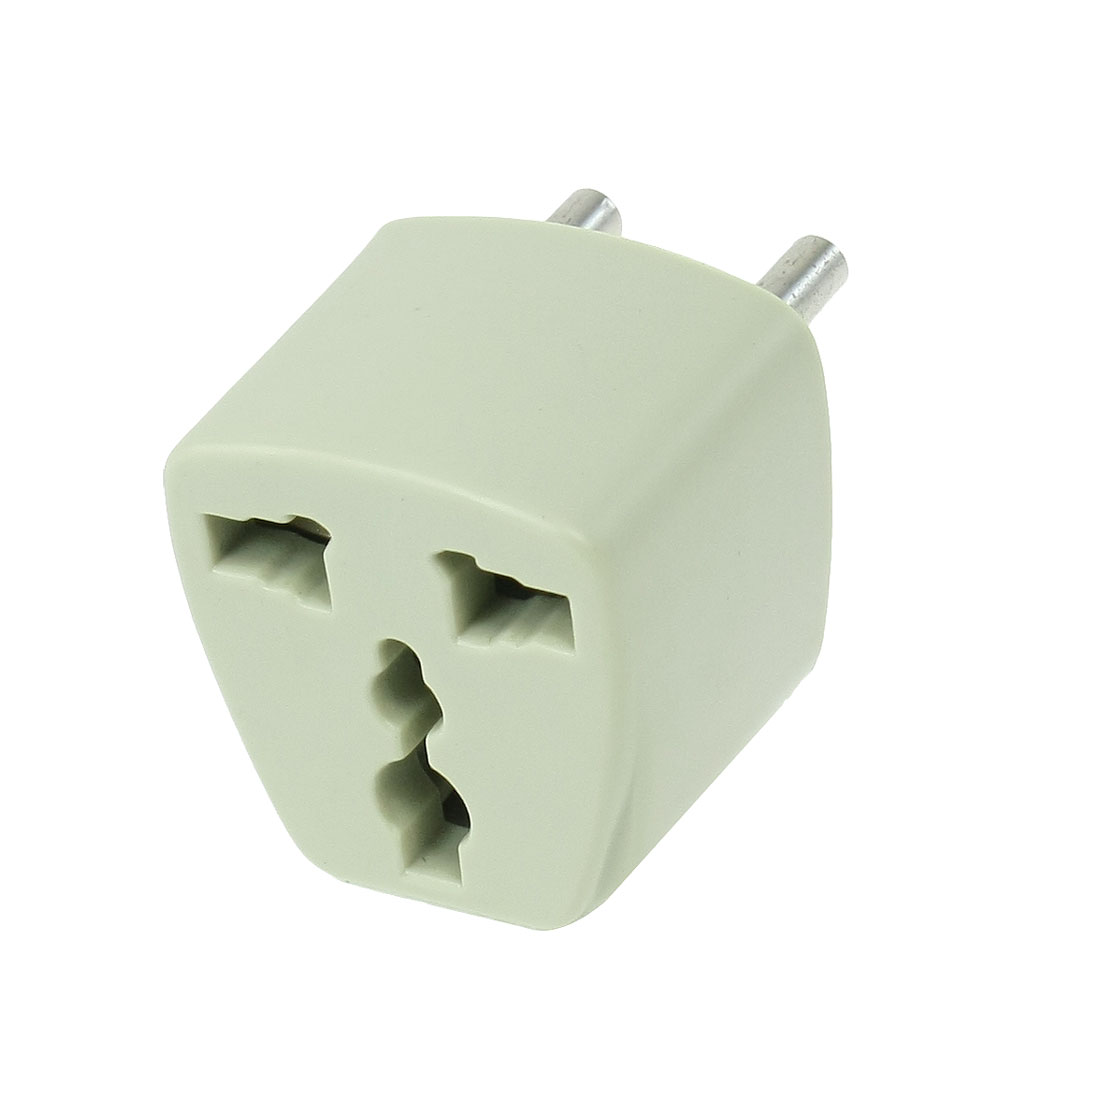 AU US UK to 2 Pin EU Travel Adapter Plug Power Converter 10A 250VAC